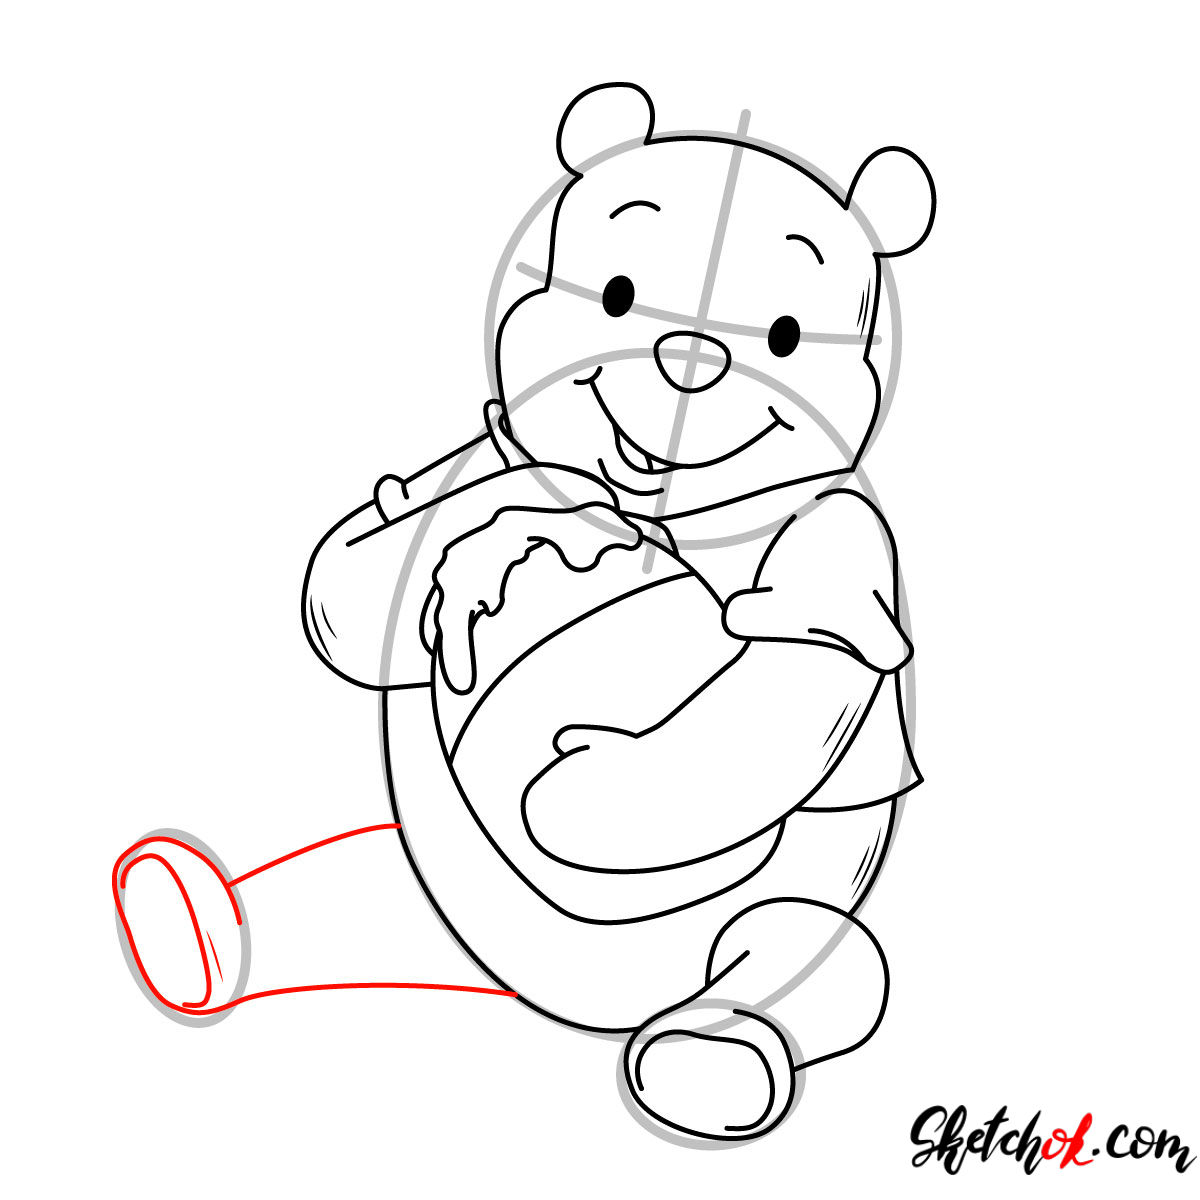 How to draw Winnie-the-Pooh eating honey - step 09